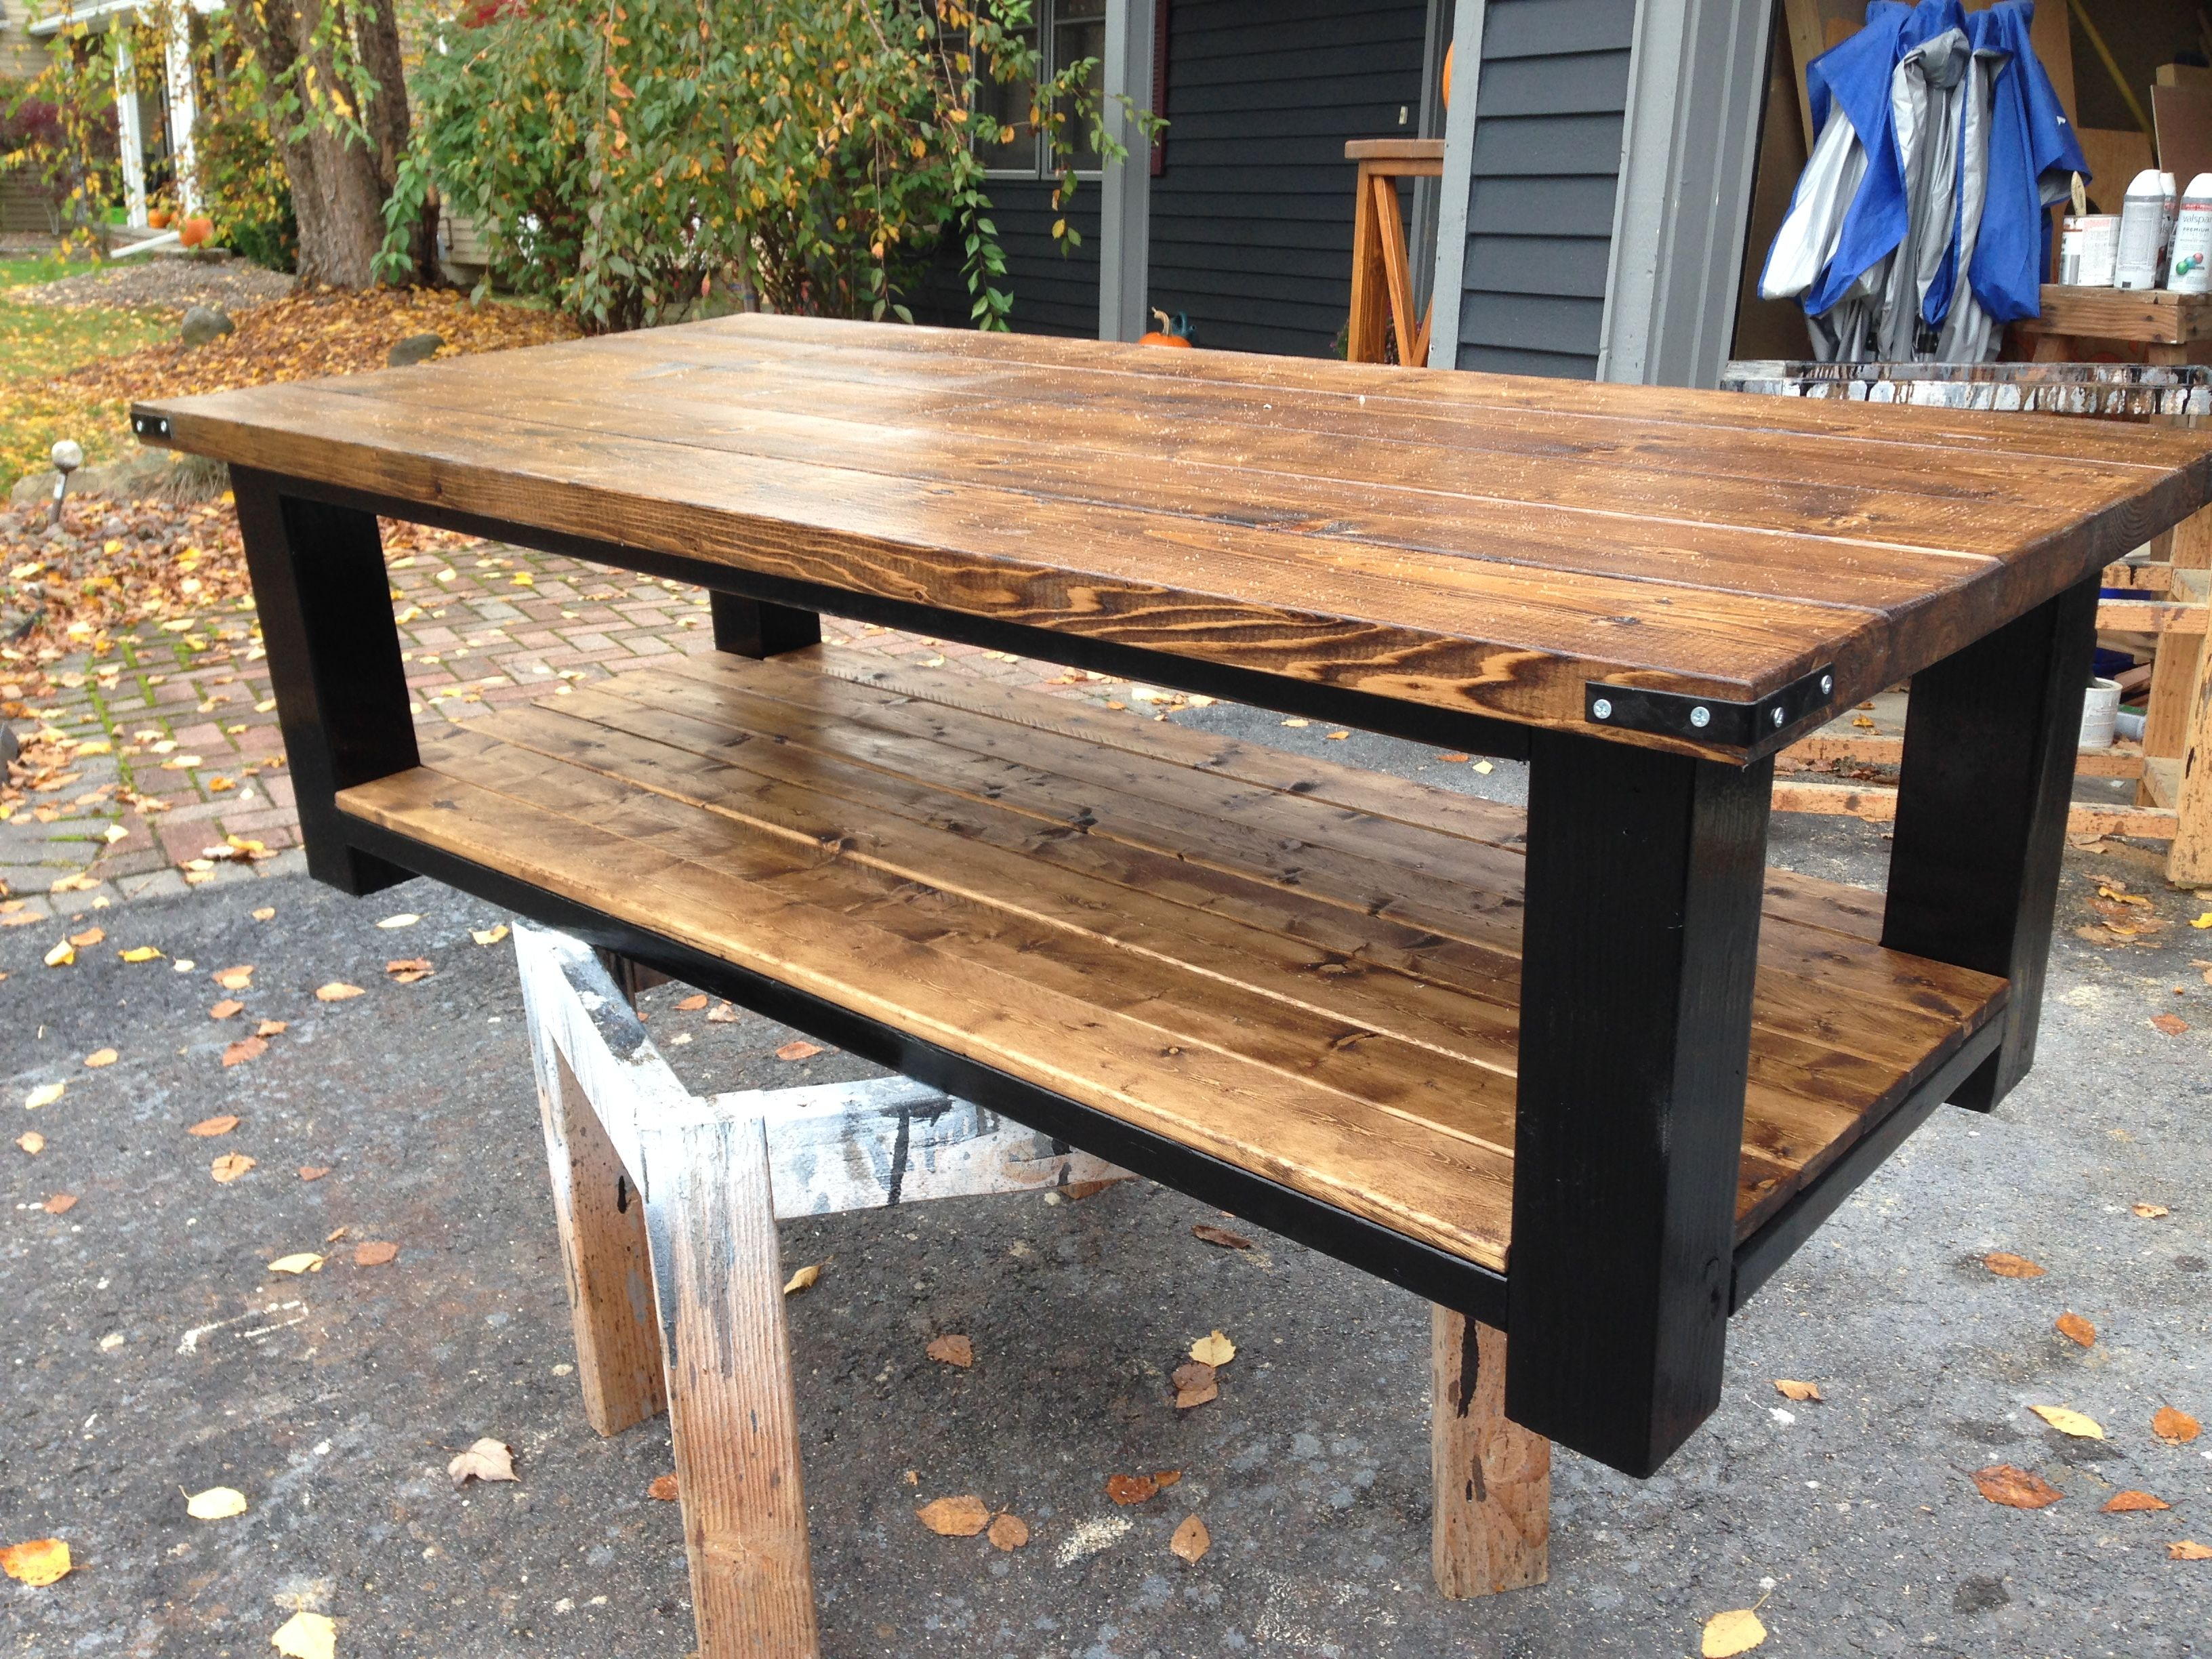 4x4 Leg Coffee Table